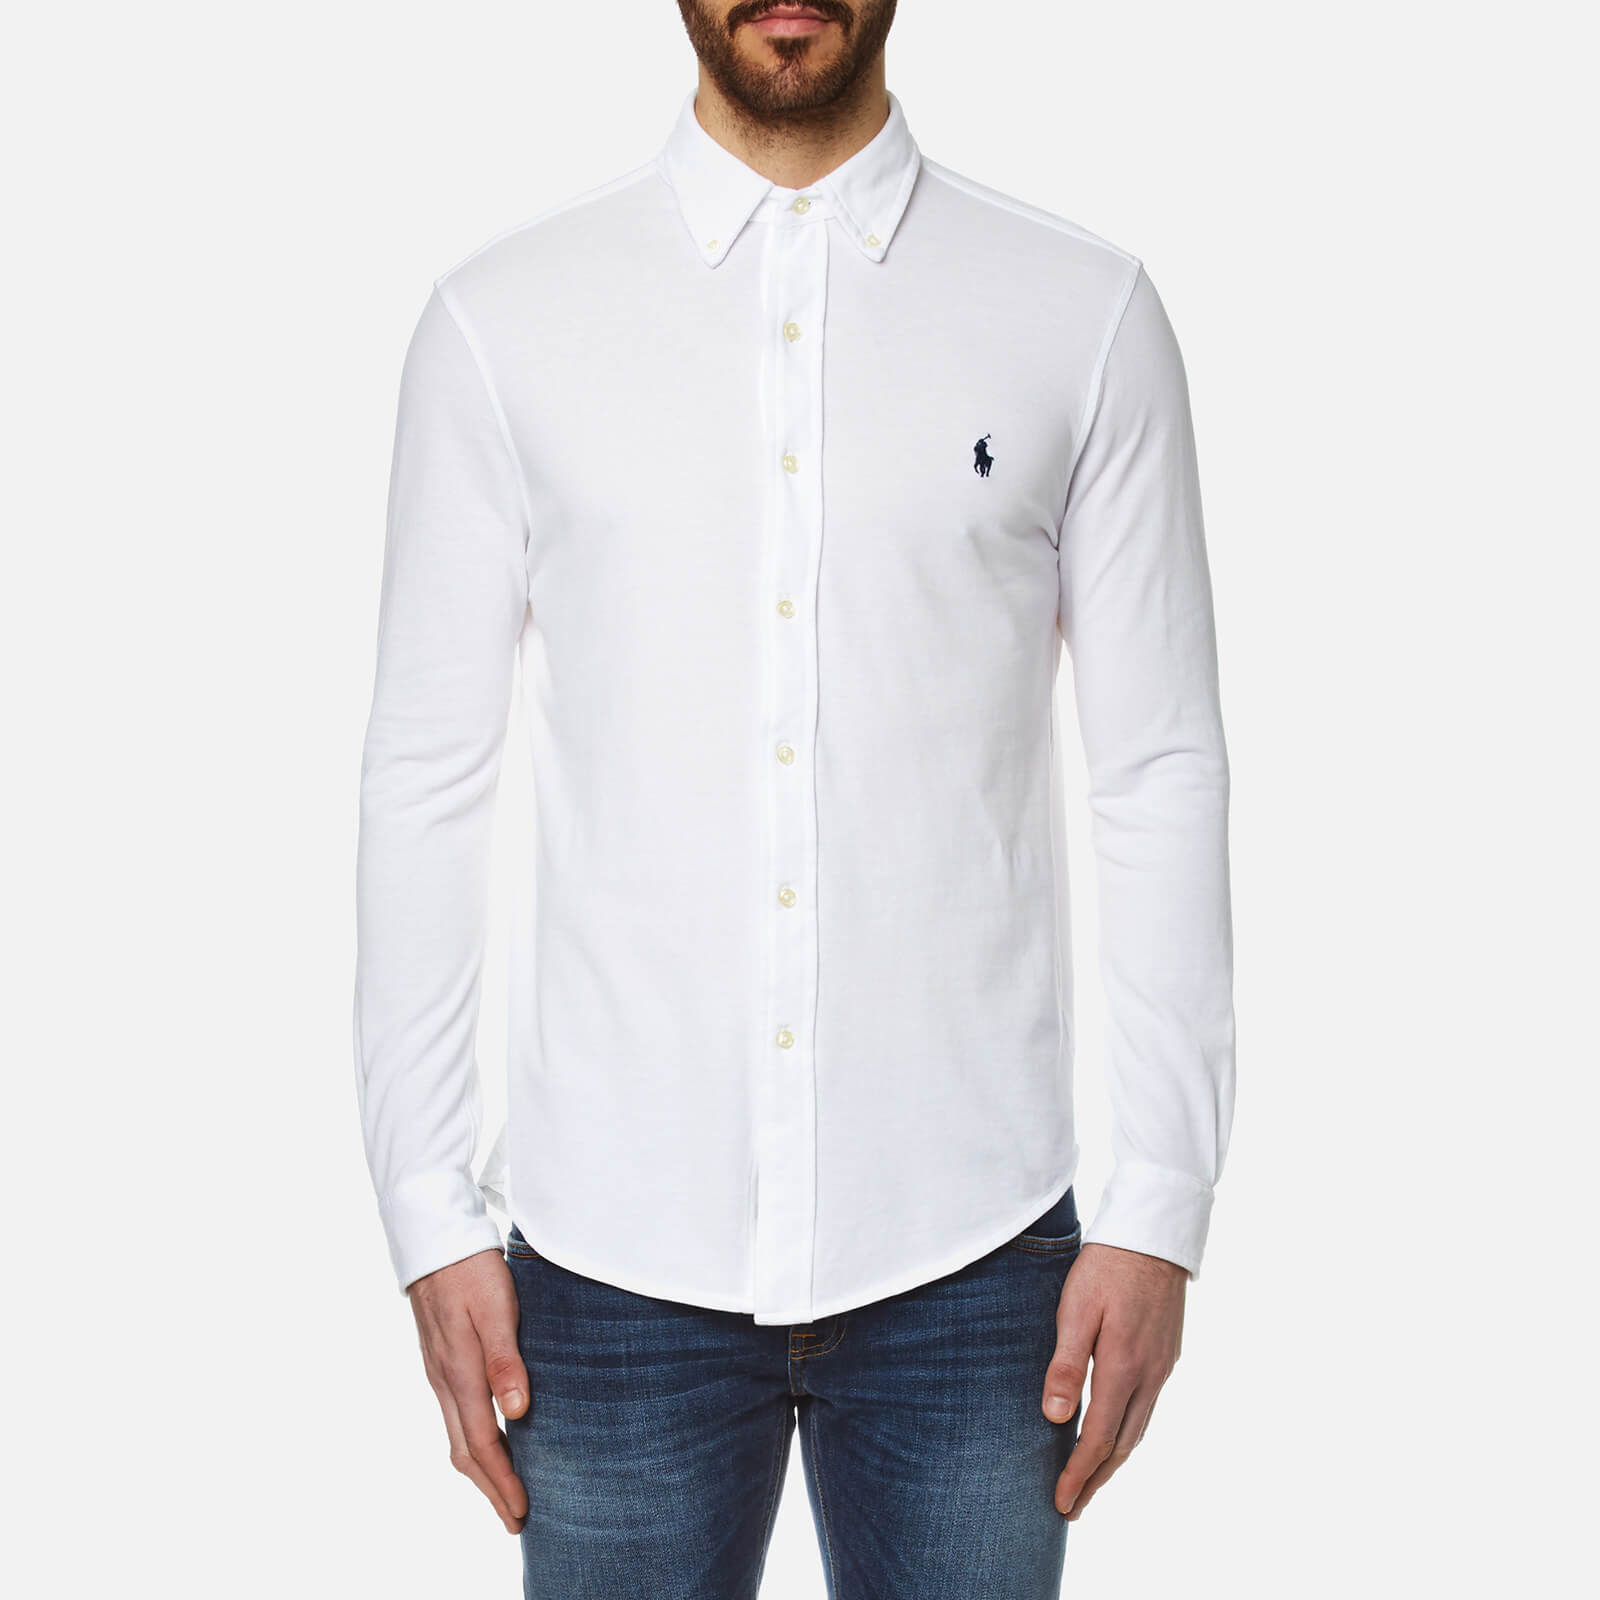 c6af04d384b01 Polo Ralph Lauren Men s Featherweight Mesh Long Sleeve Shirt - White - Free  UK Delivery over £50